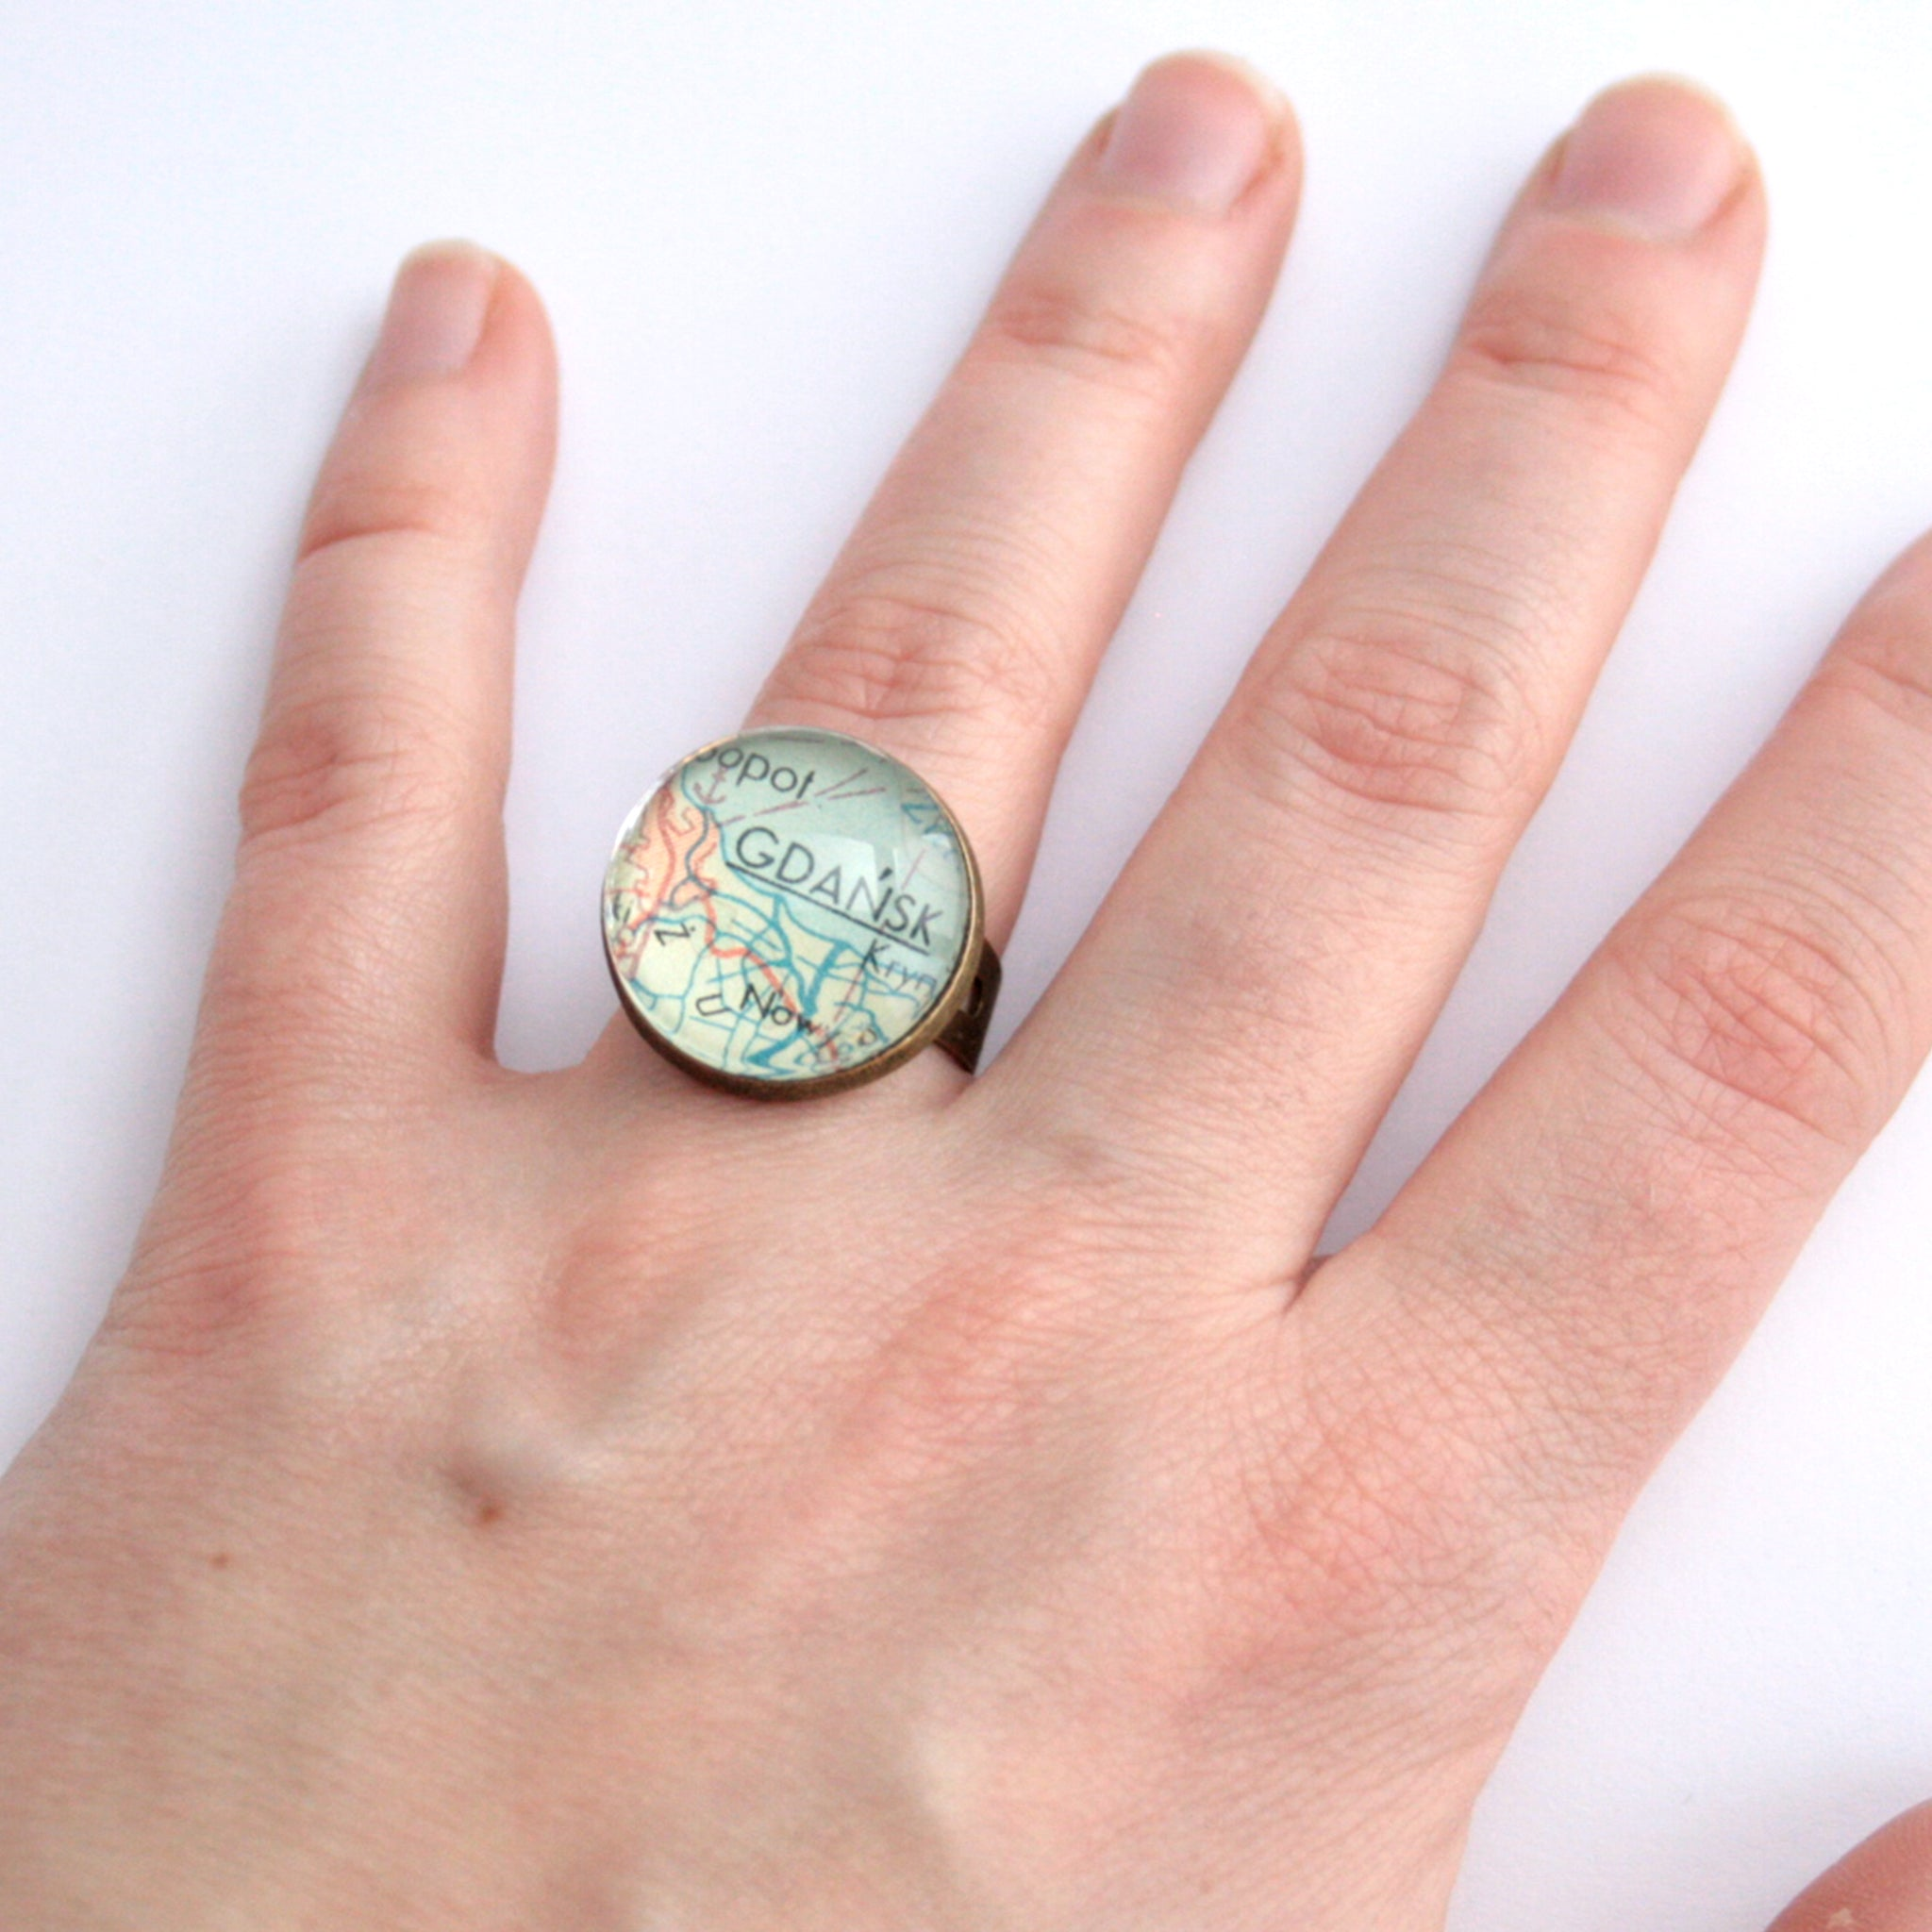 Bronze ring featuring map of Gdansk worn on hand